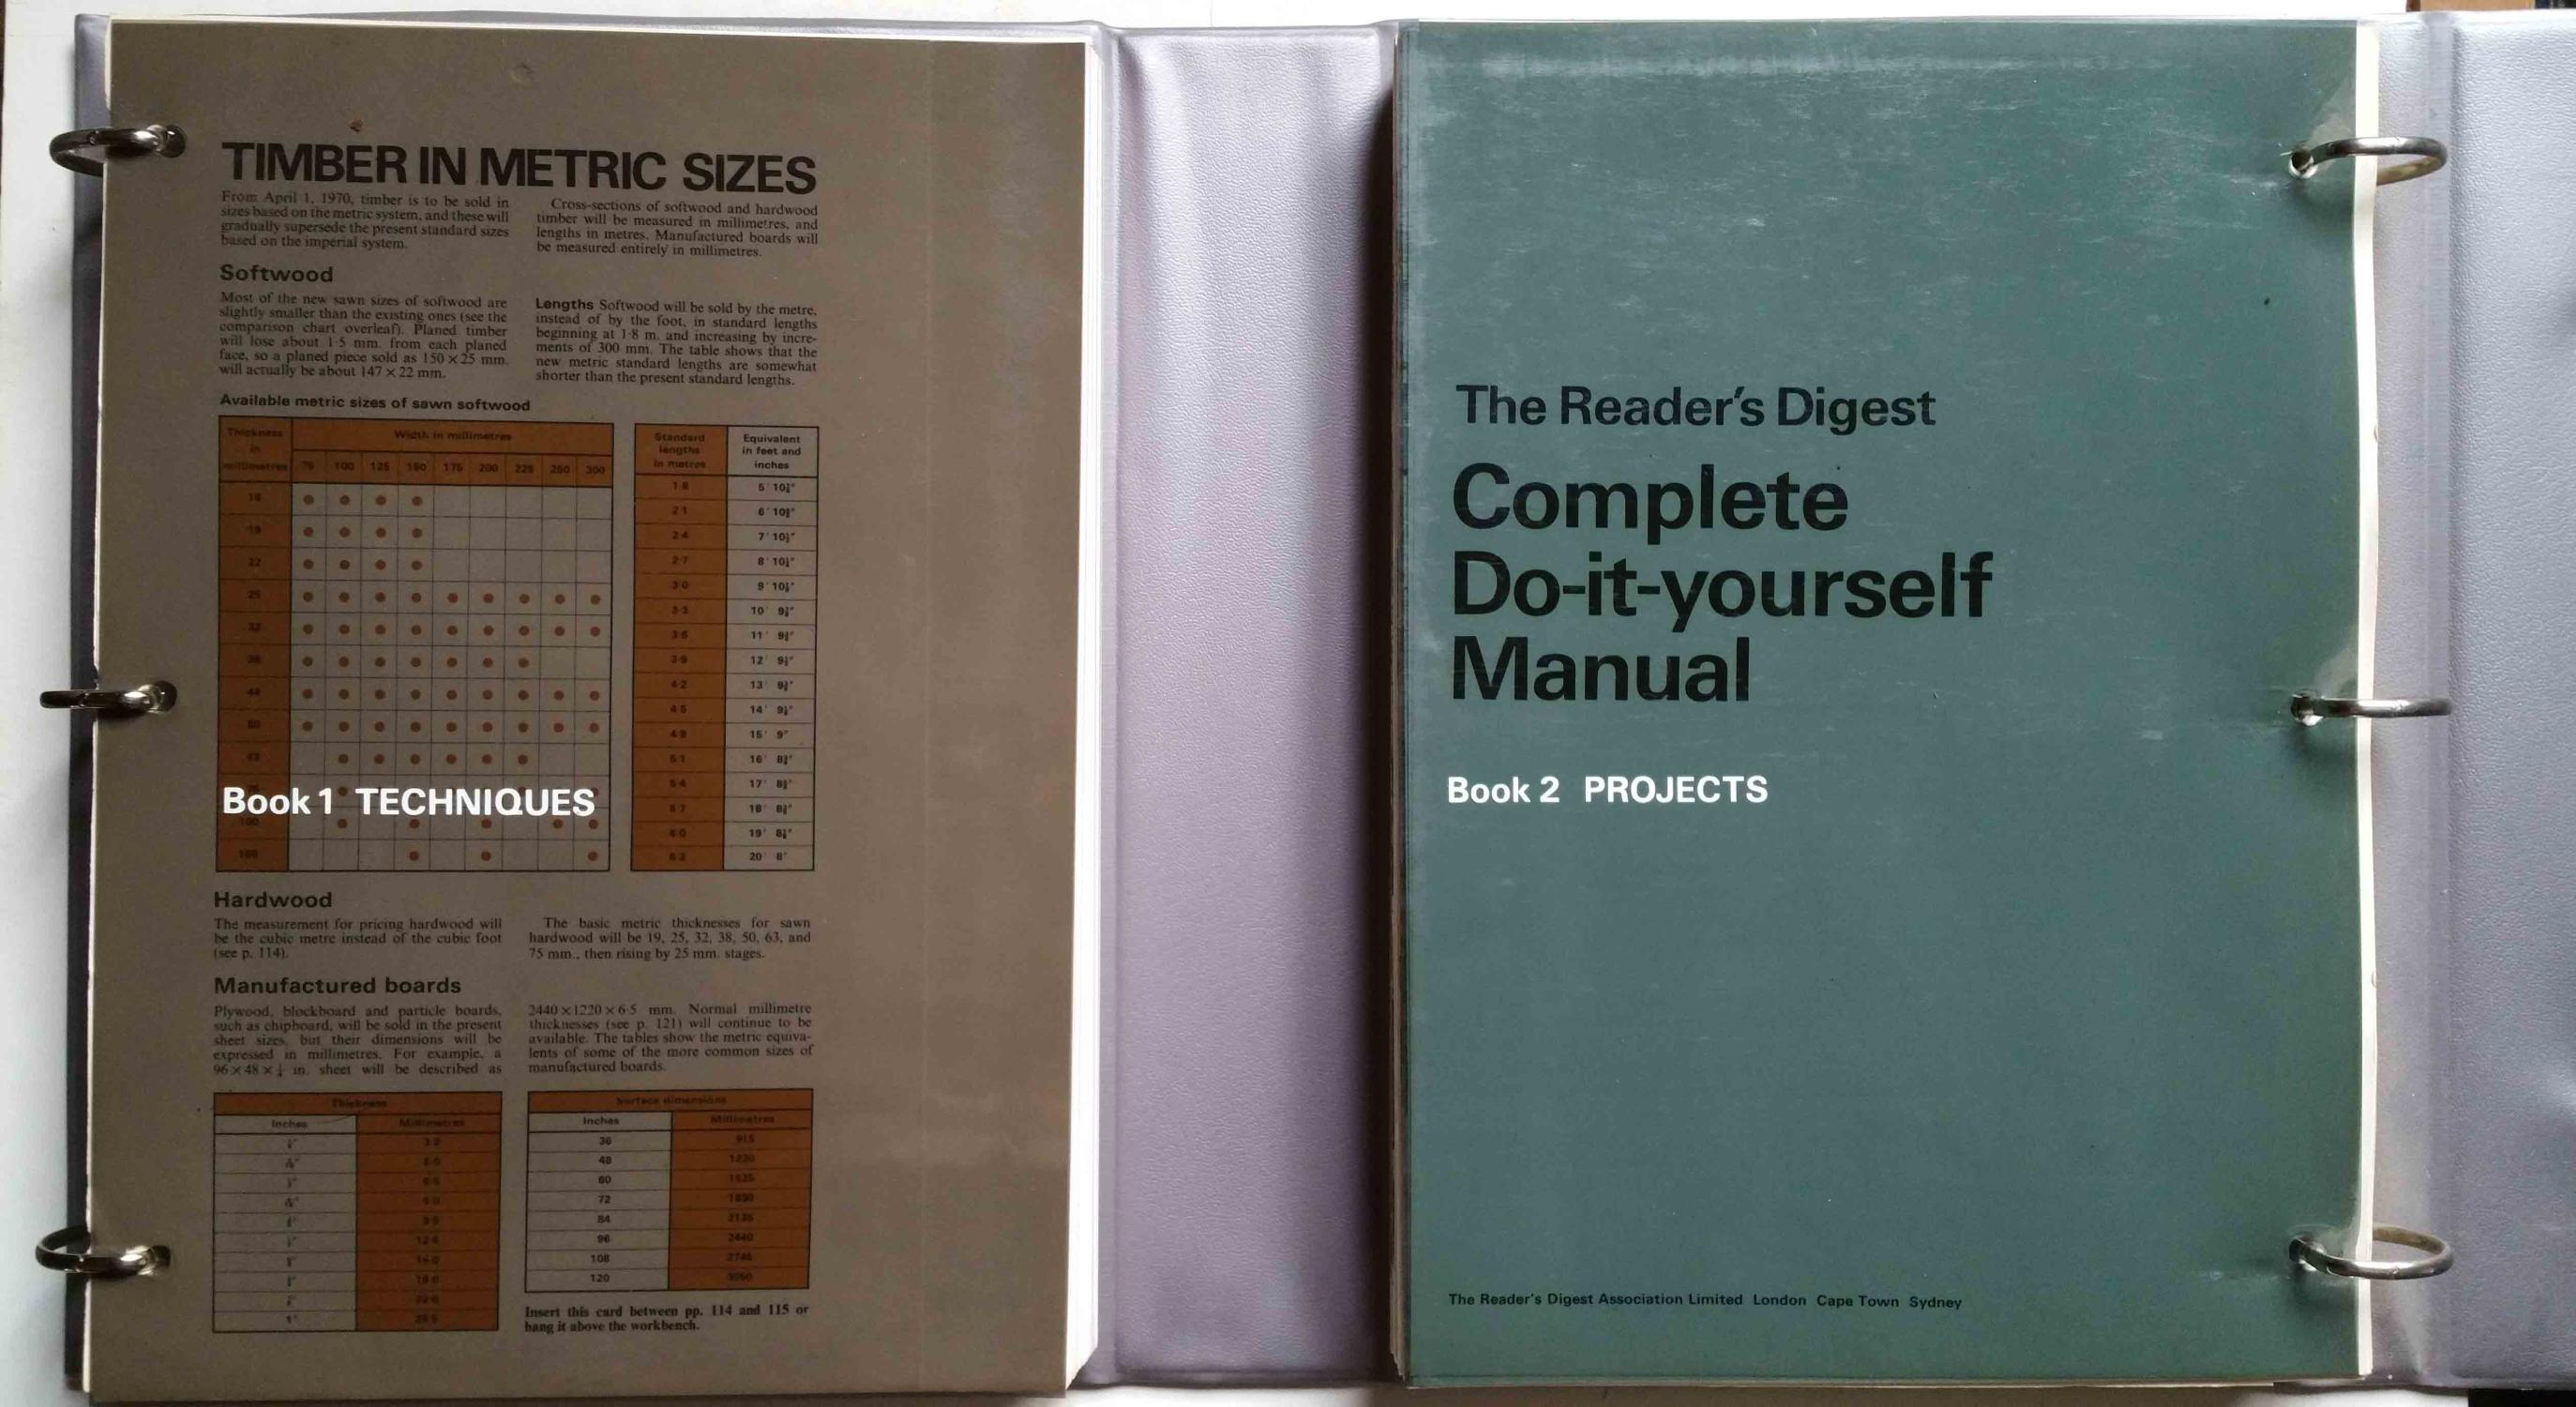 The readers digest complete do it yourself manual by nicholas j the readers digest complete do it yourself manual nicholas j frewing solutioingenieria